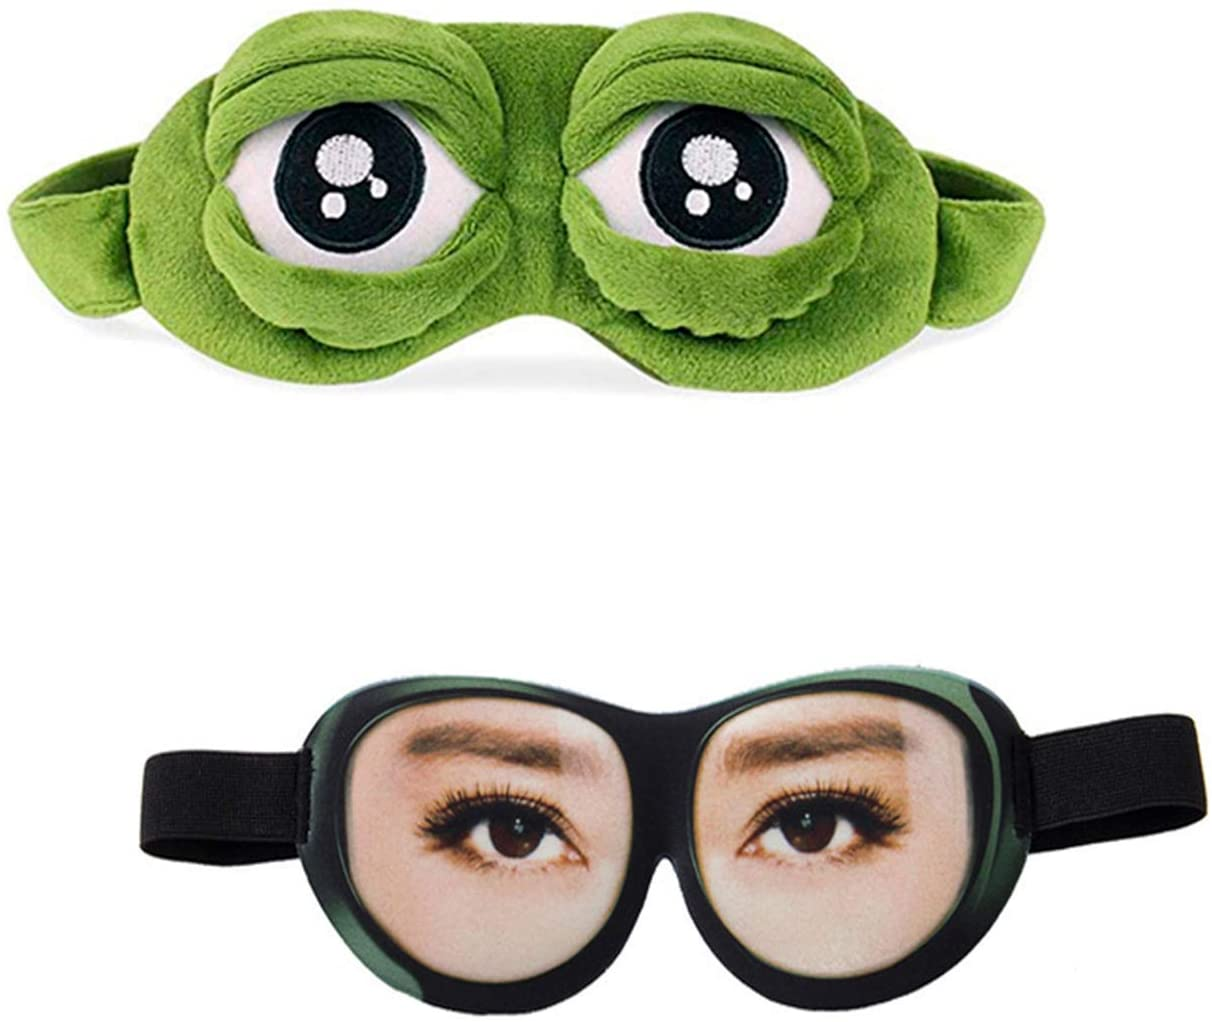 YouU 2 Pack 3D Cute Frog Sleep Eye Mask Green Cartoon Sad Frog Eye Mask Cover Sleeping Rest Travel Anime Funny Gift (Women's Style)